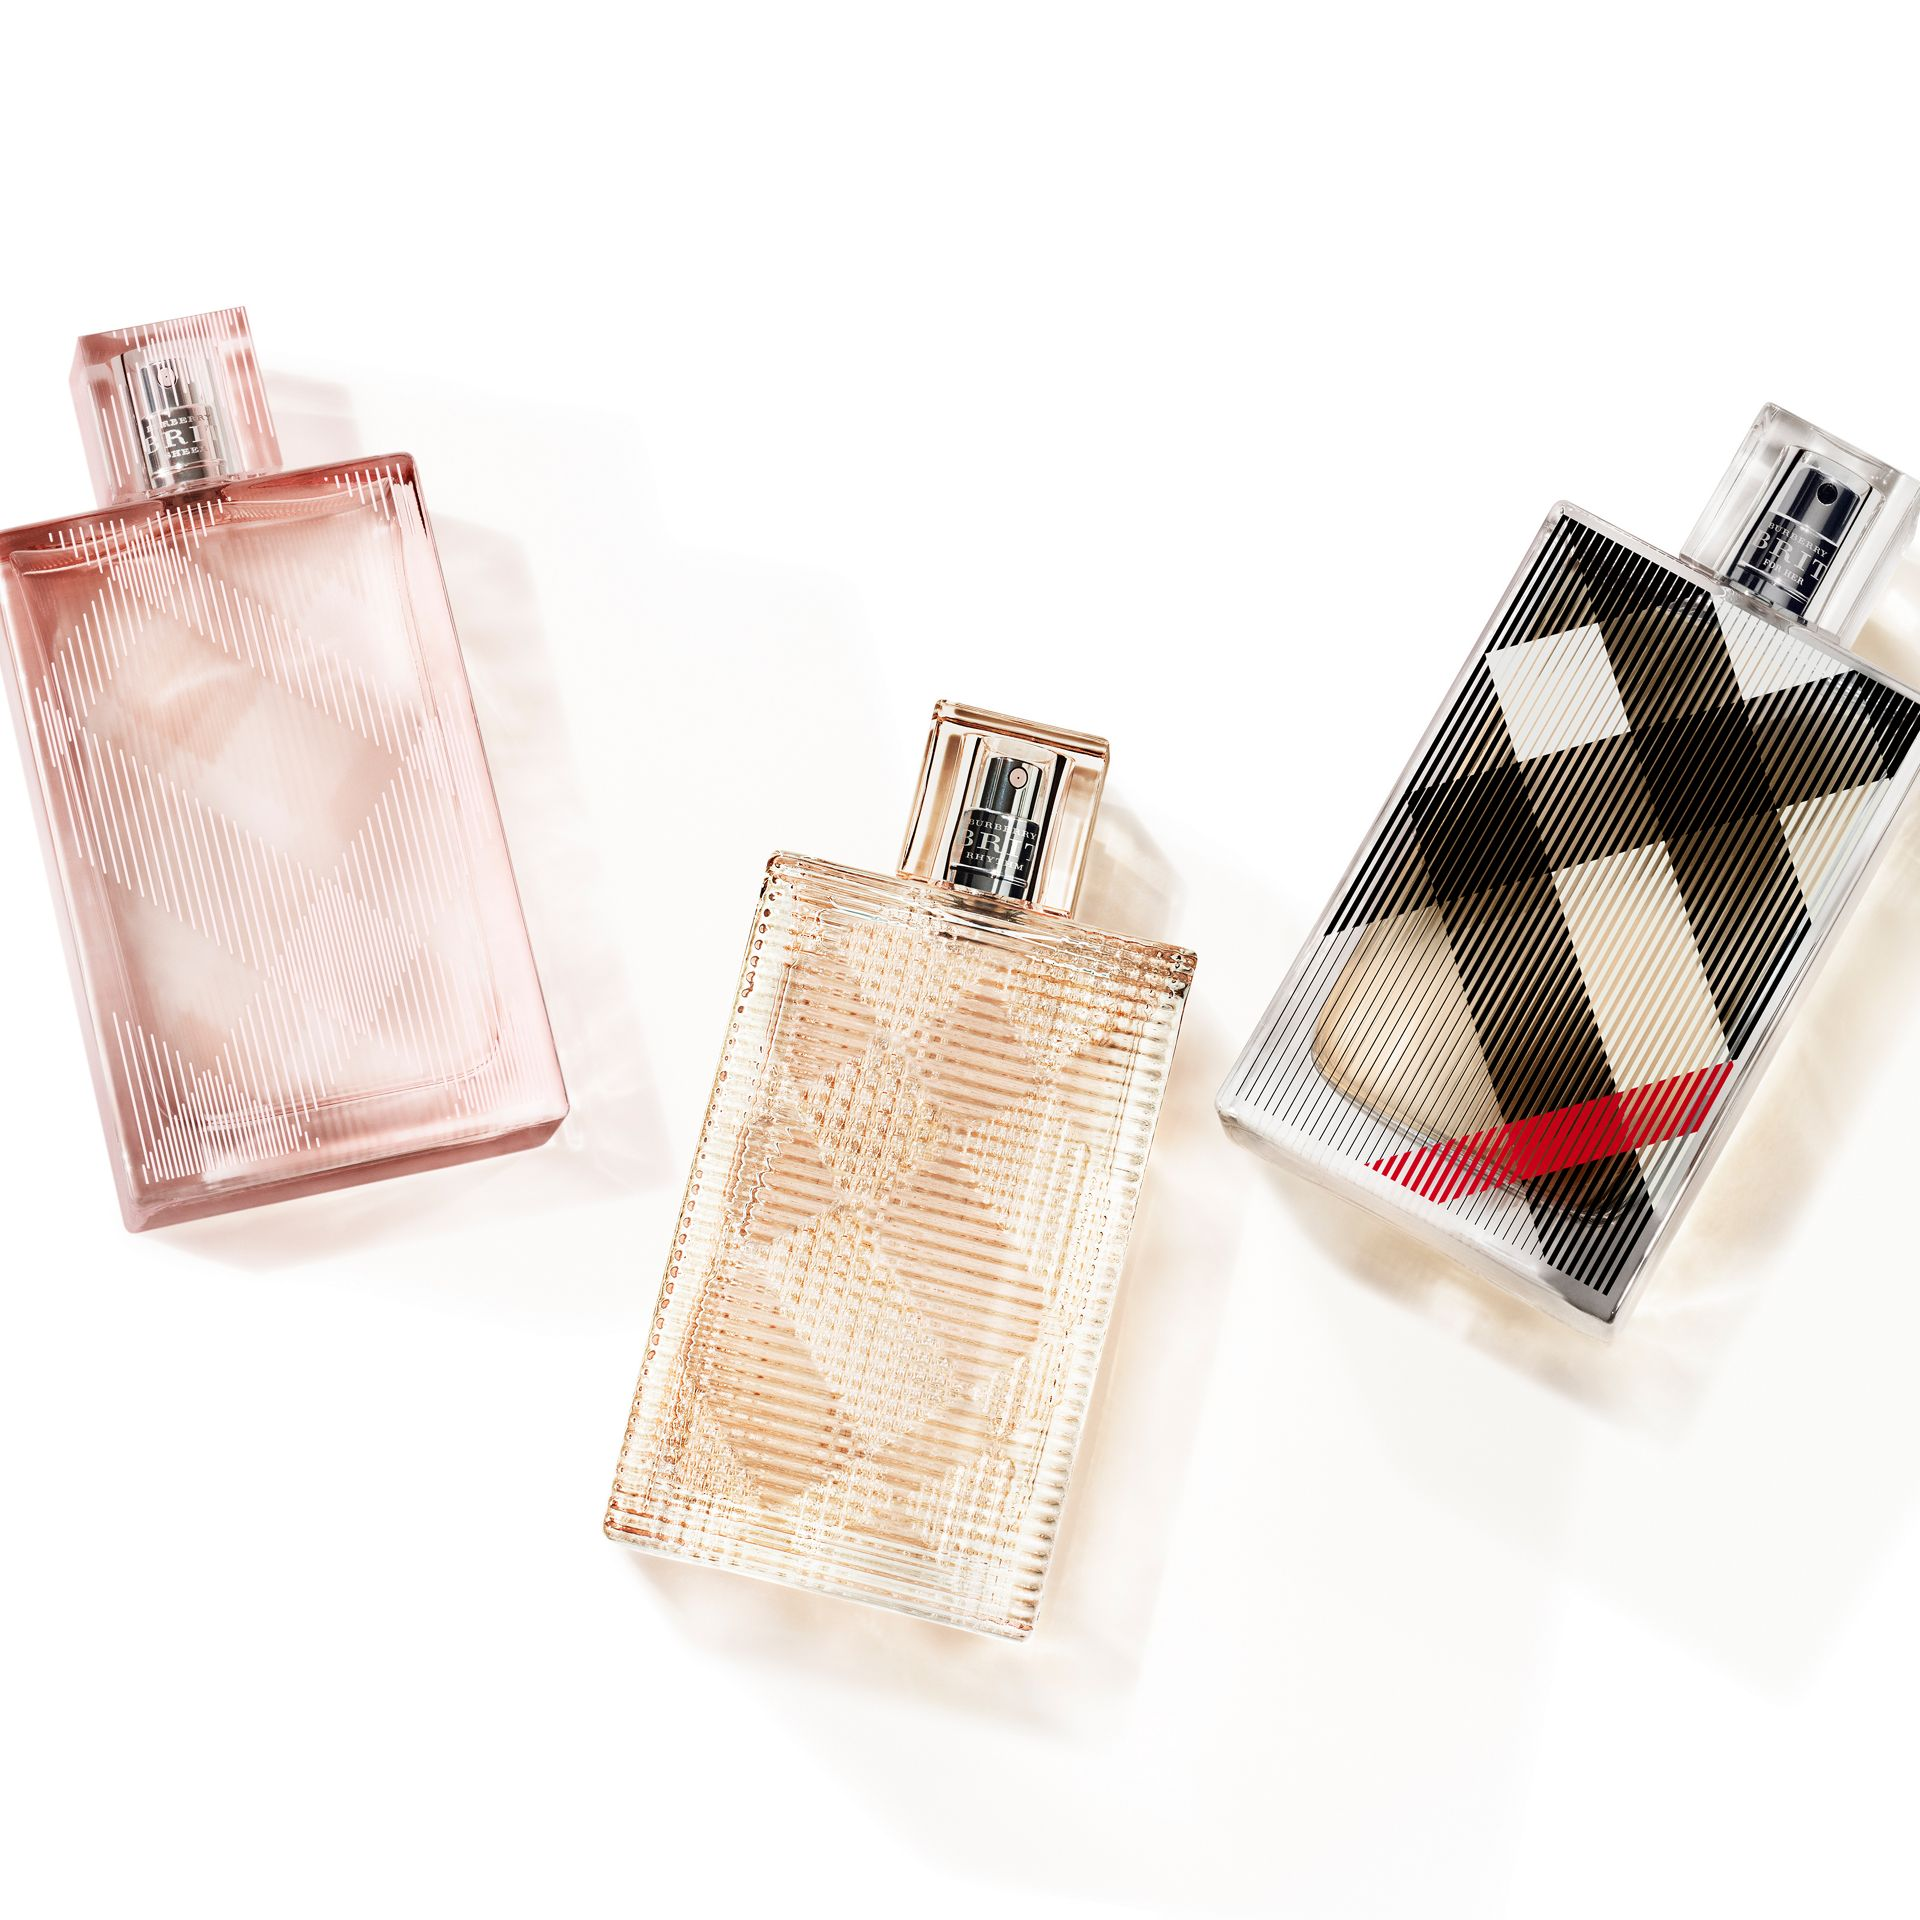 Burberry Brit For Her Eau de Toilette 50ml - Women | Burberry Singapore - gallery image 2